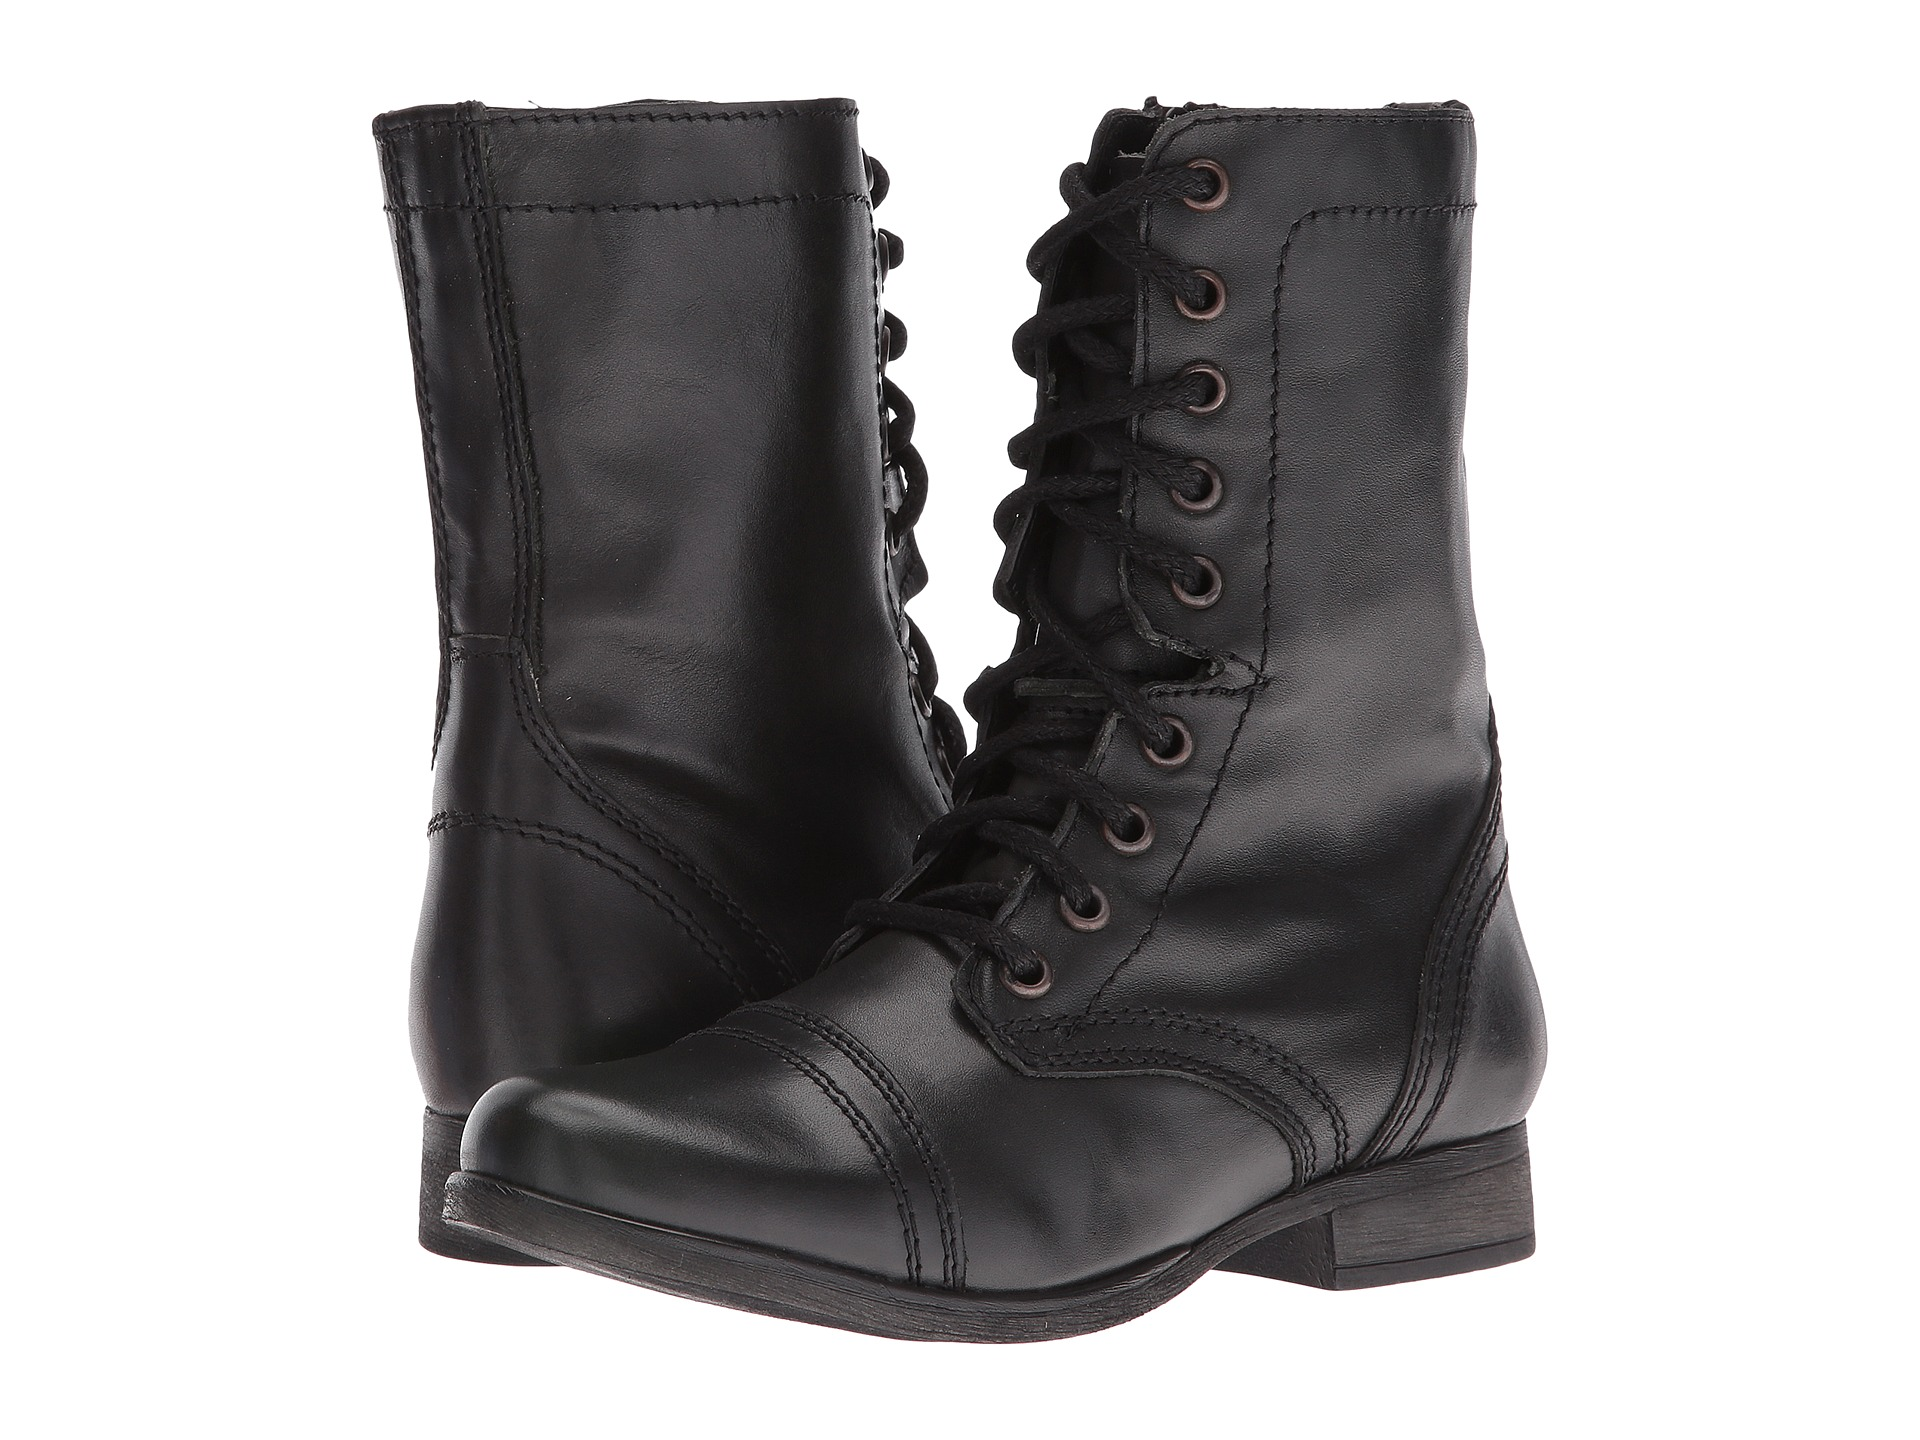 Steve Madden Troopa Black Leather - Zappos.com Free Shipping BOTH Ways